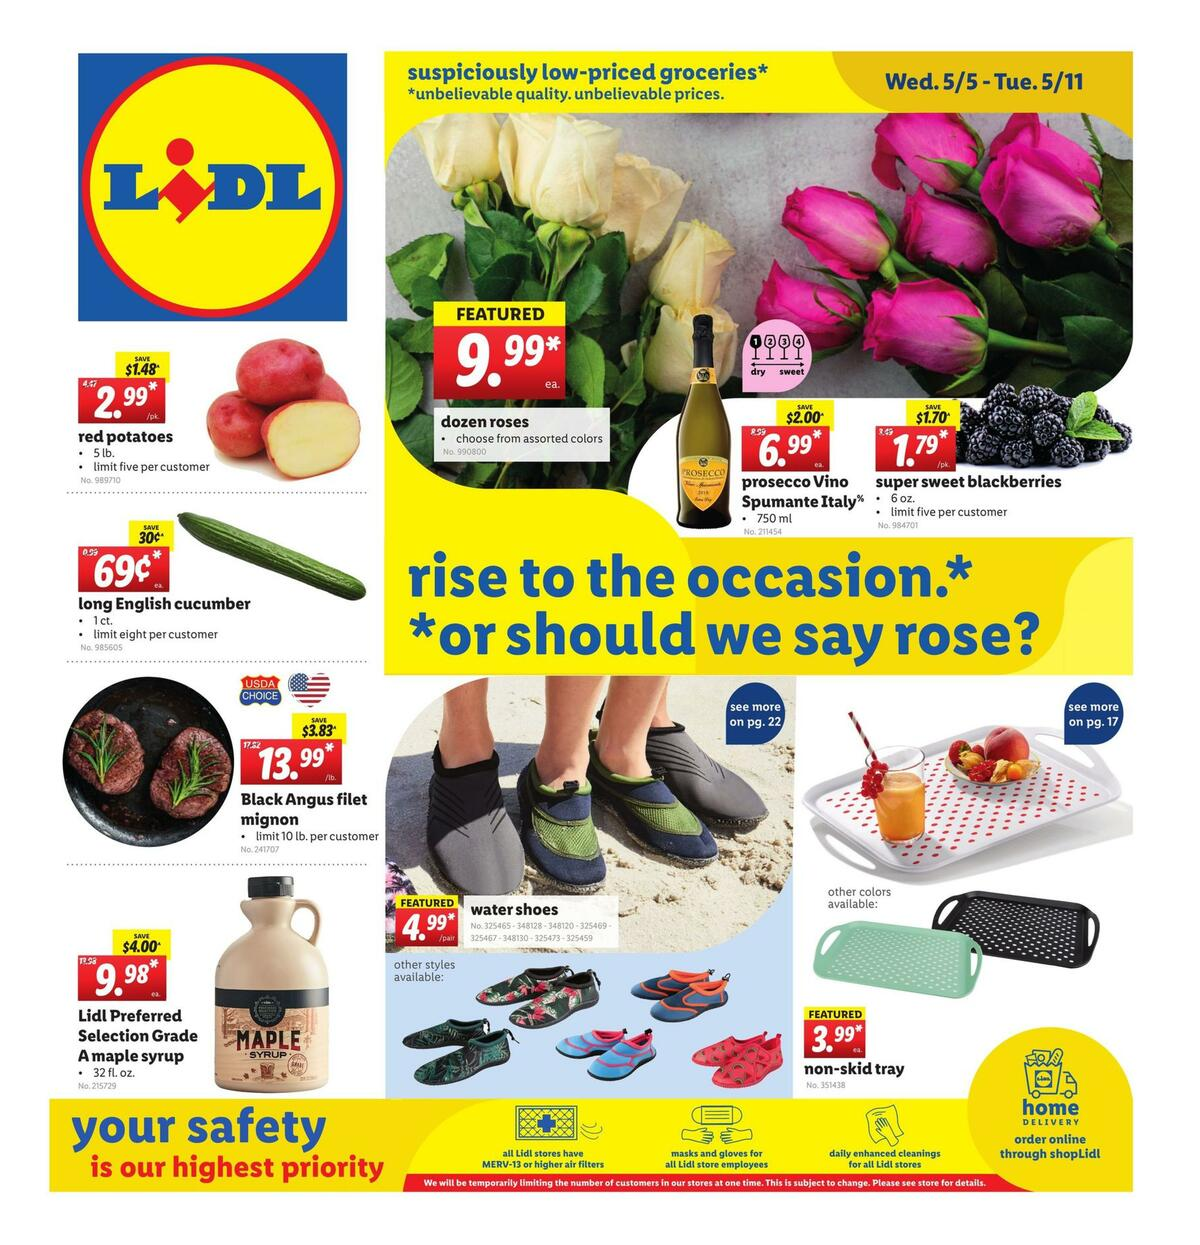 LIDL Weekly Ad from May 5